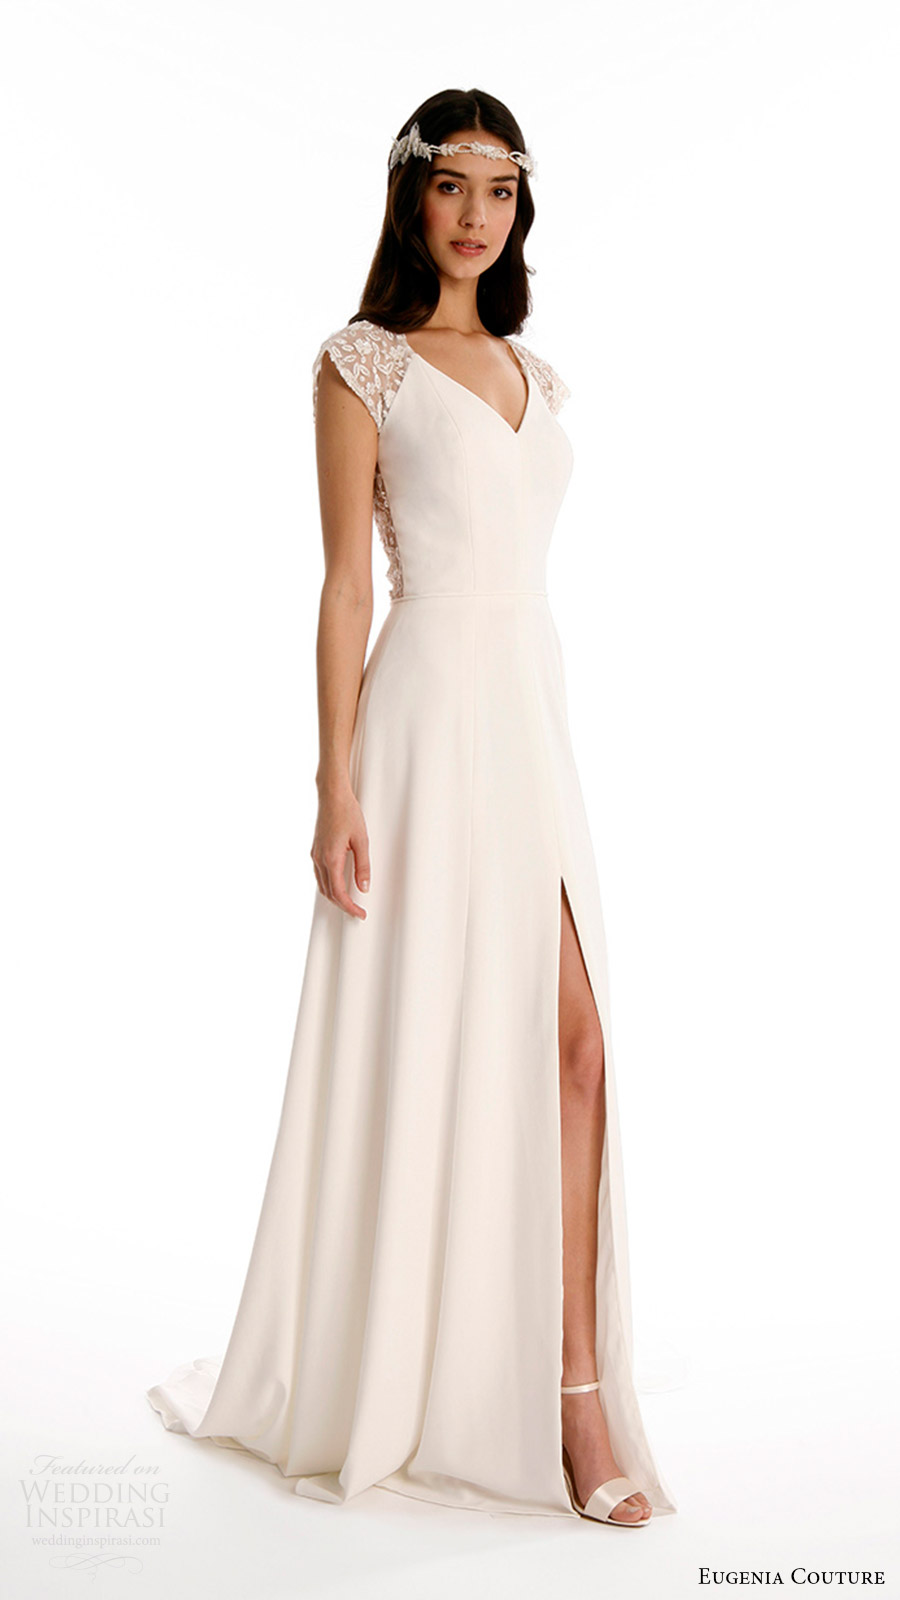 eugenia couture joy bridal spring 2017 beaded cap sleeves vneck crepe aline wedding dress (vanessa) mv slit skirt